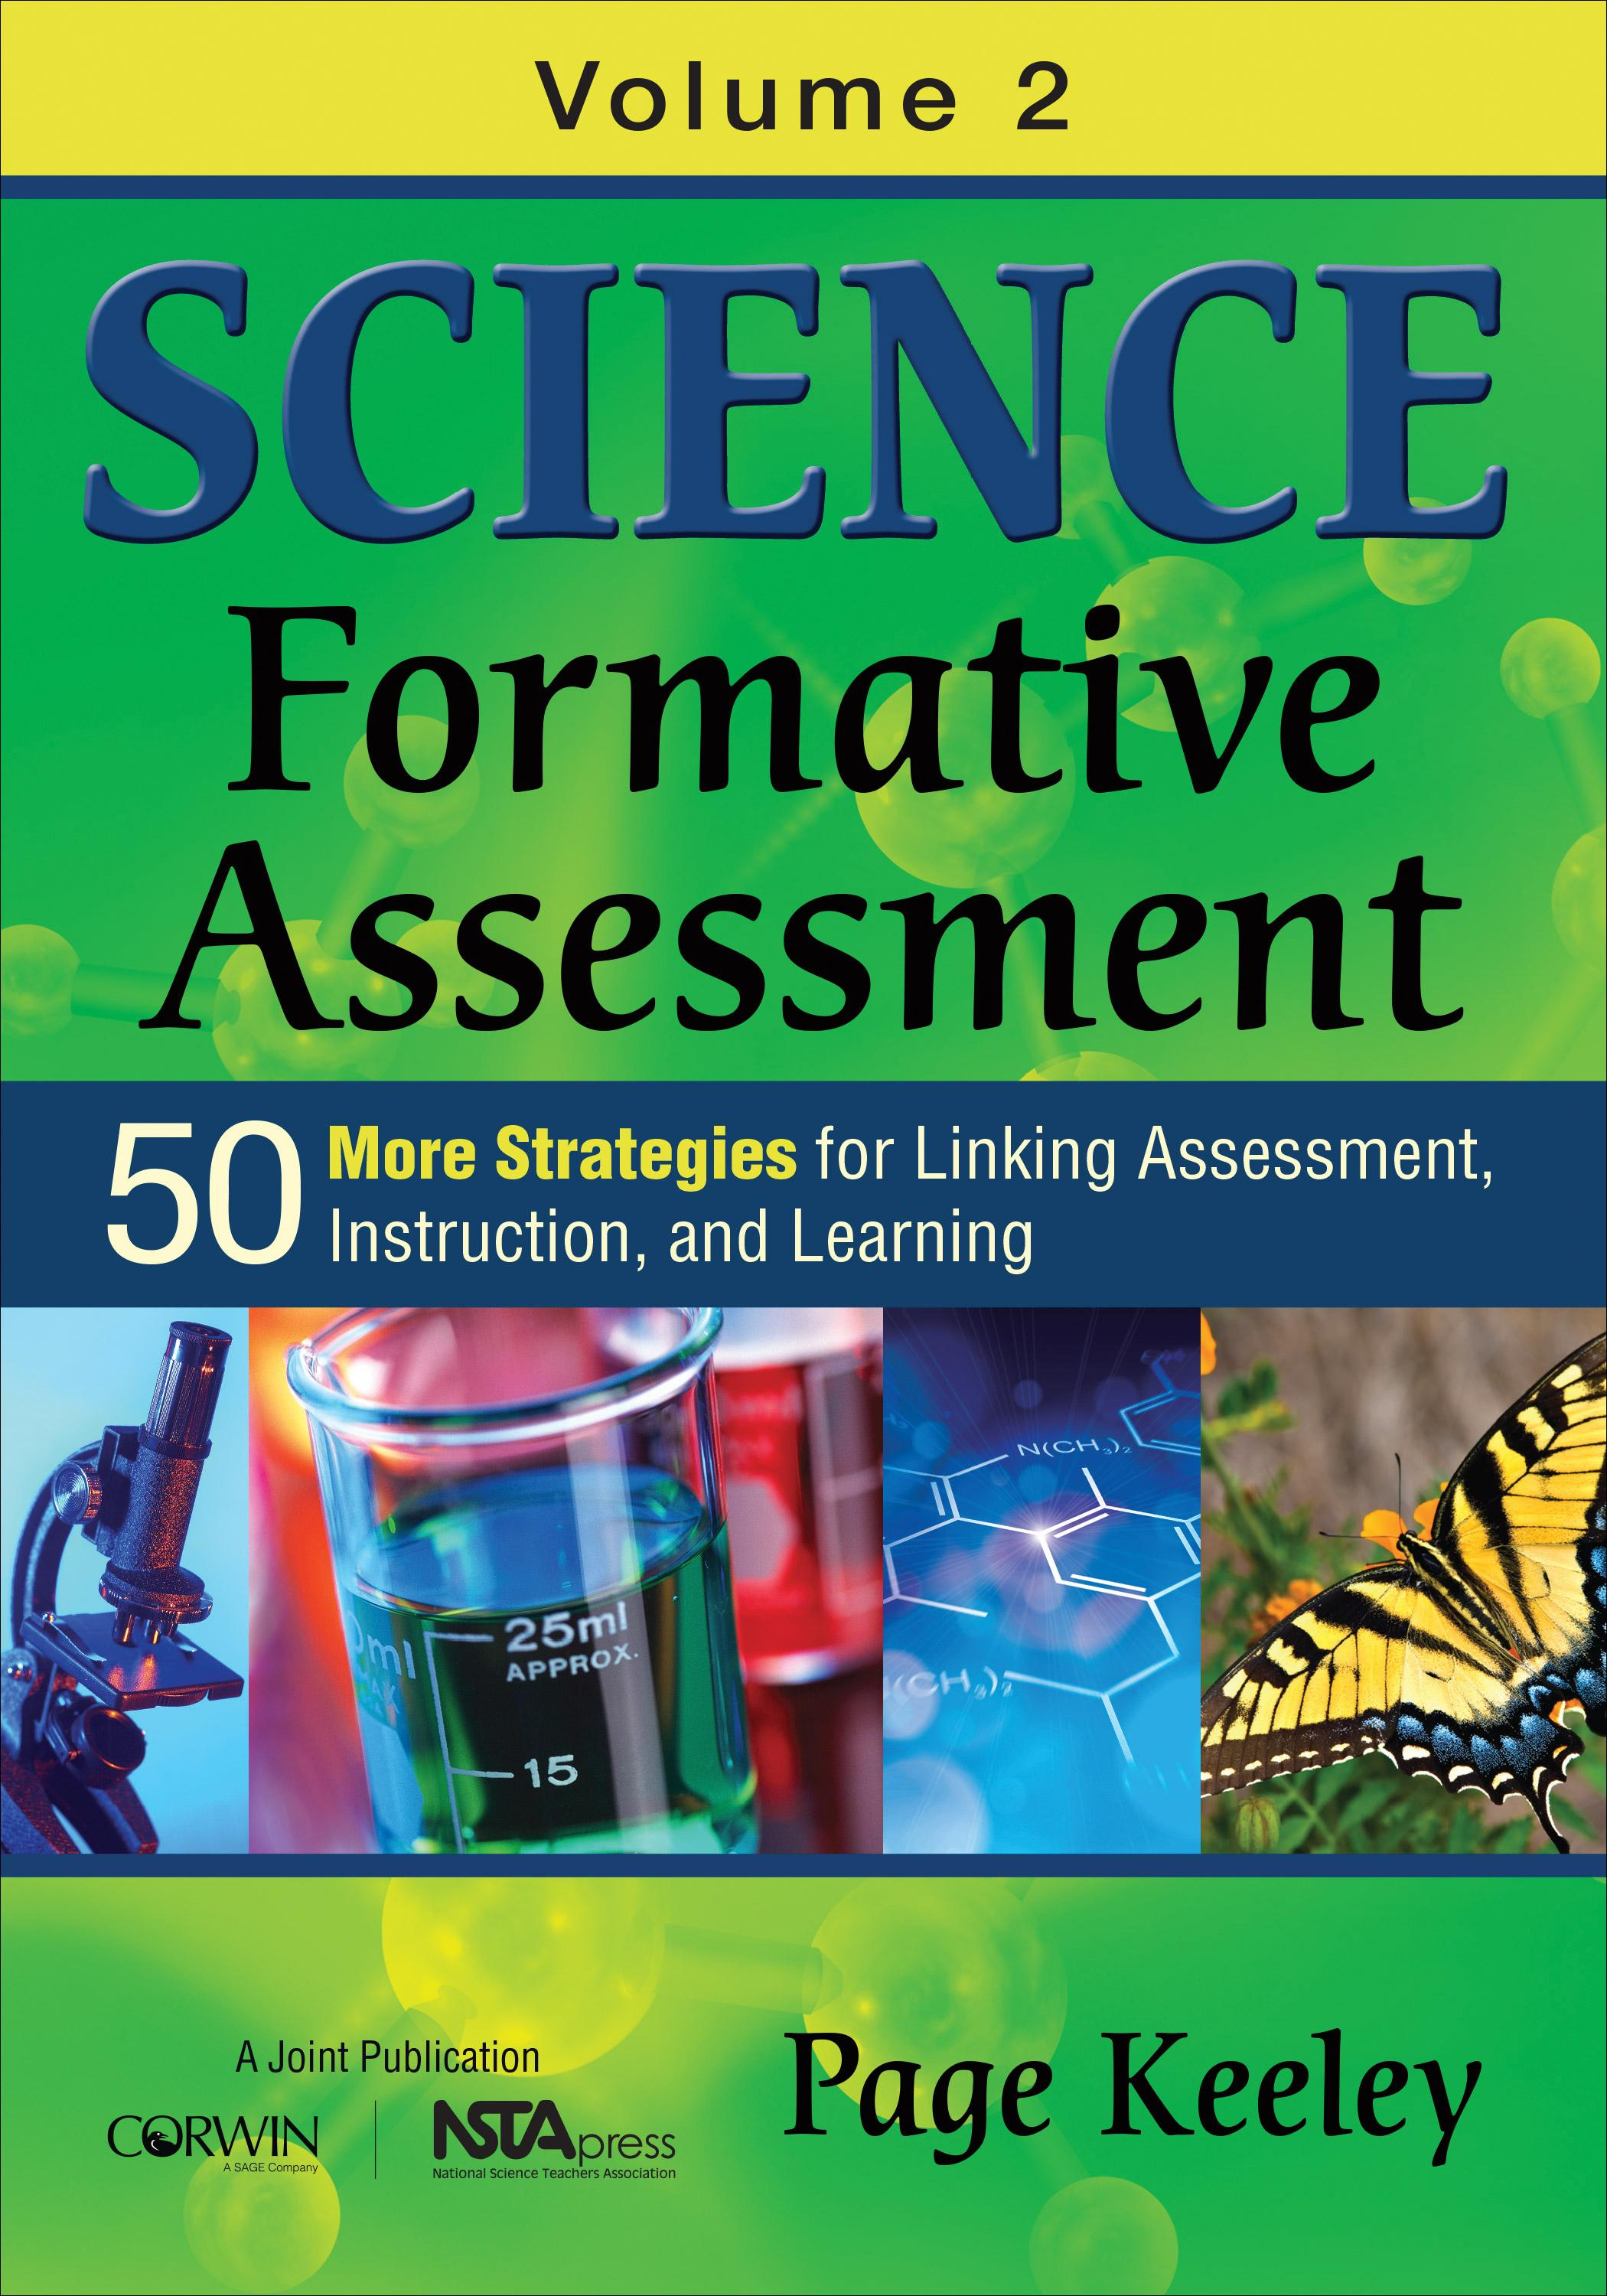 Science Formative Assessment Volume 2 50 More Strategies For